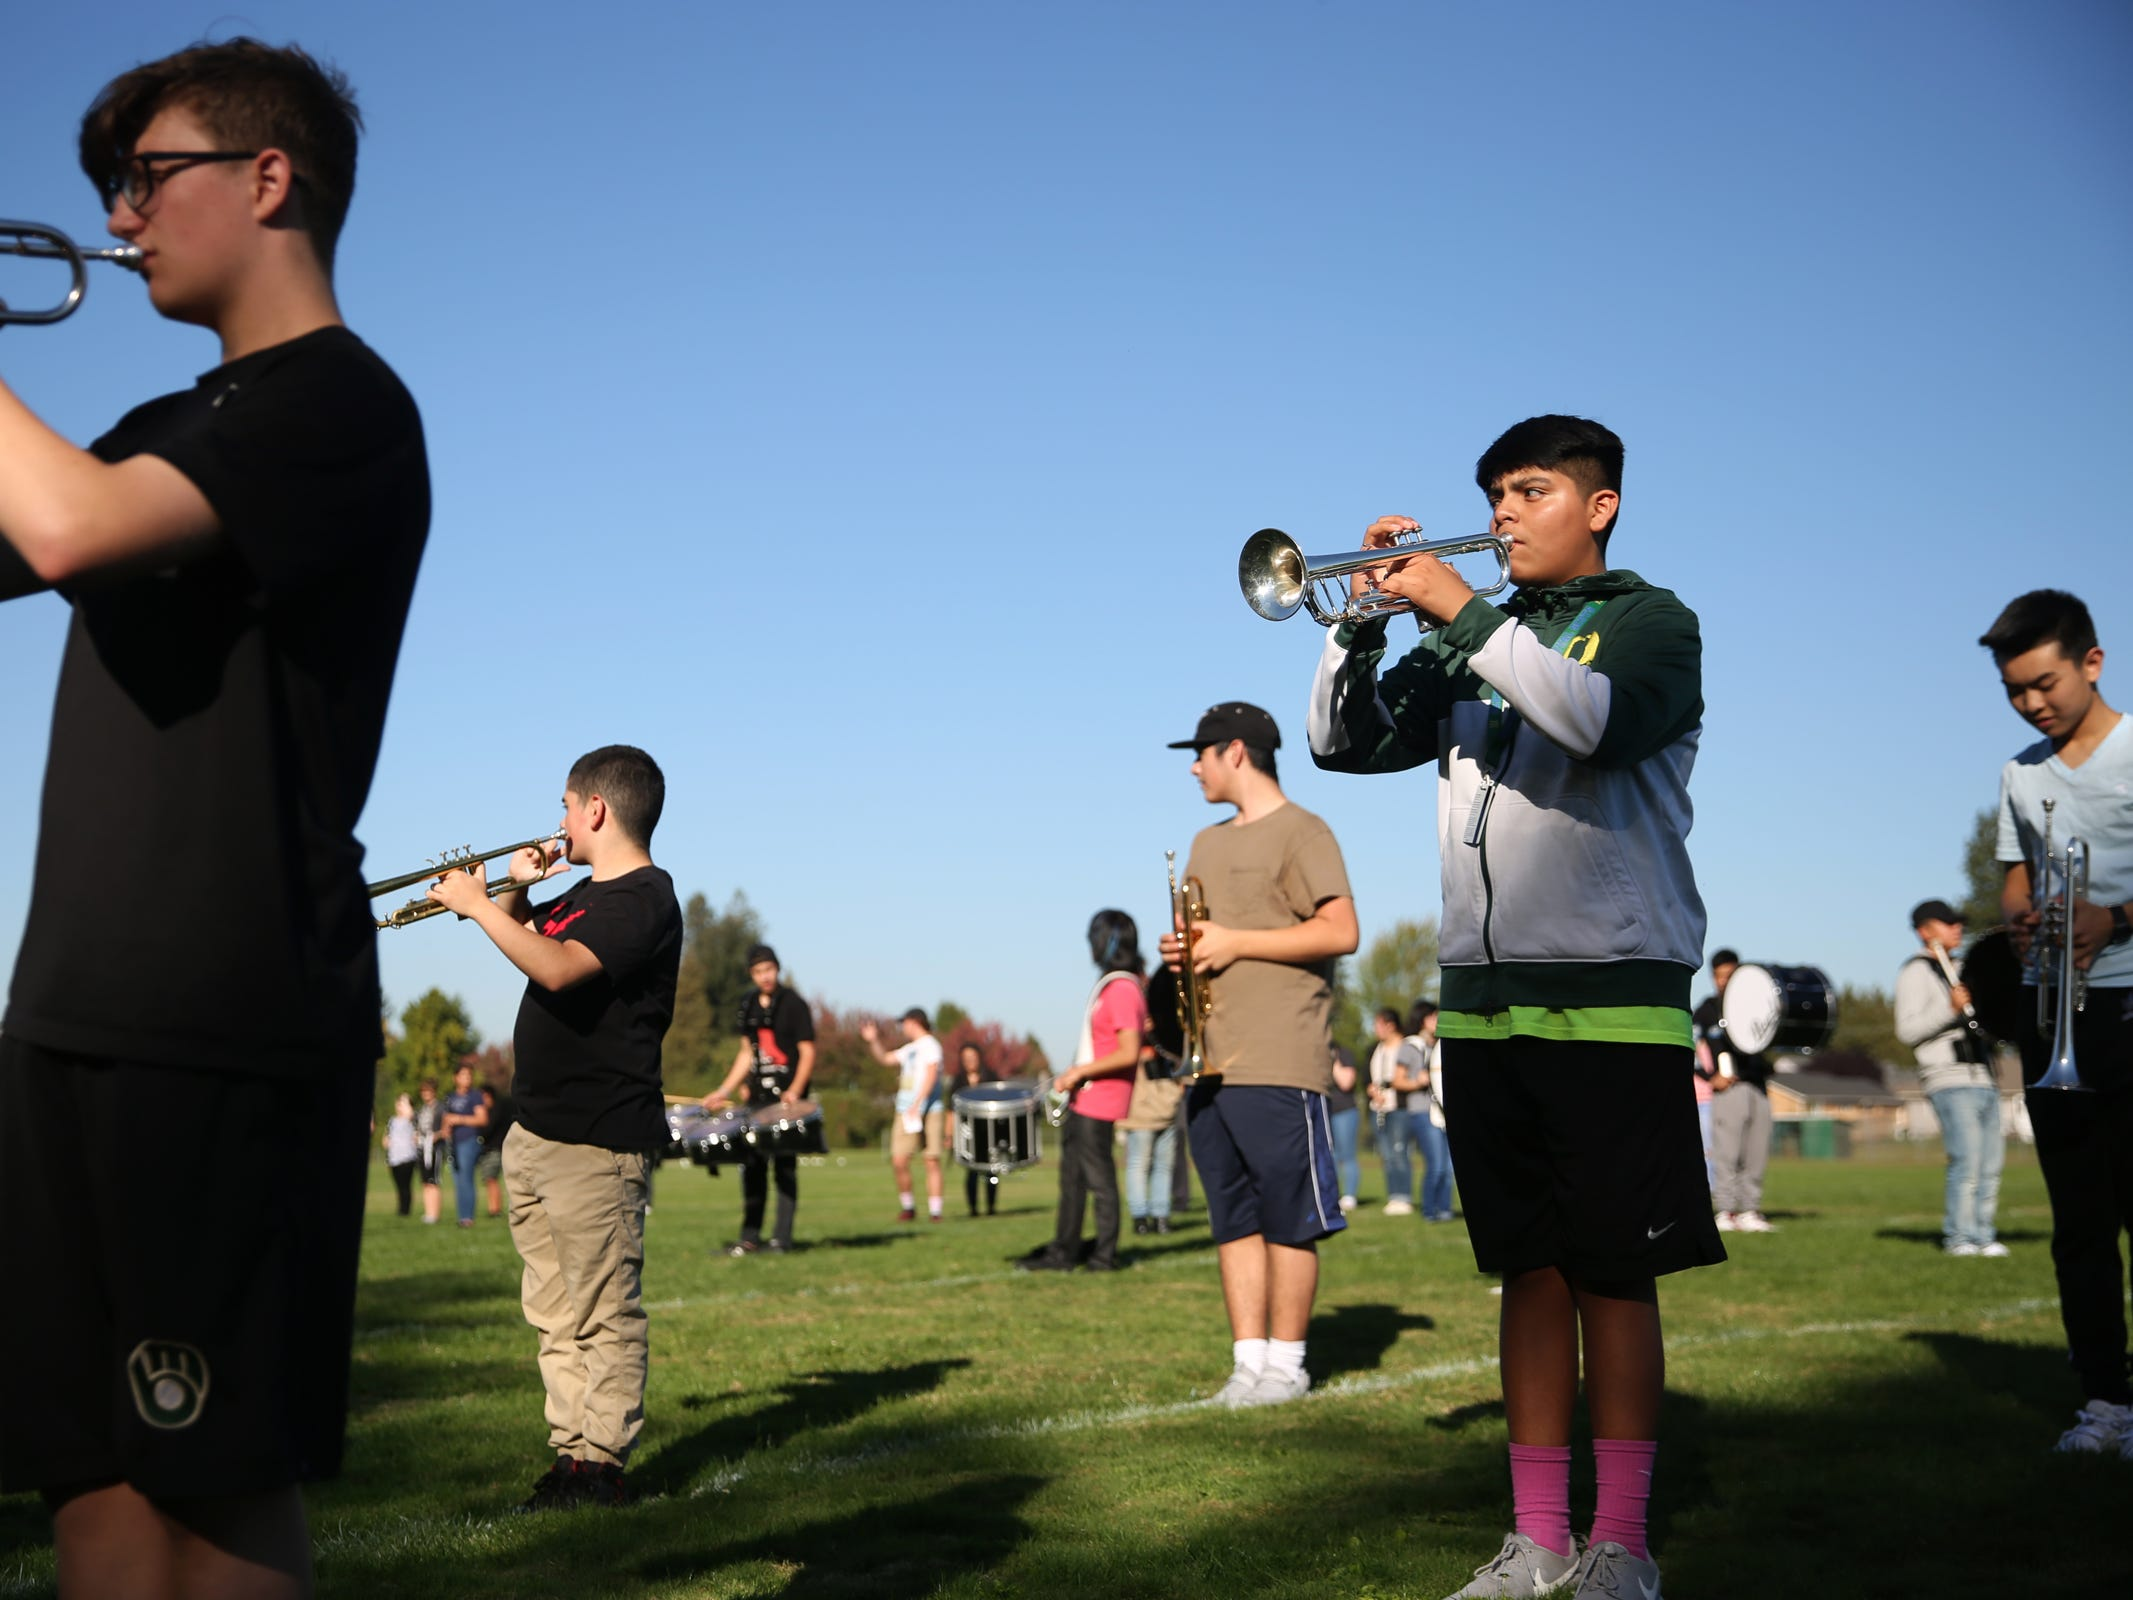 The McKay marching band rehearses at McKay High School in Salem on Thursday, Sep. 27, 2018.